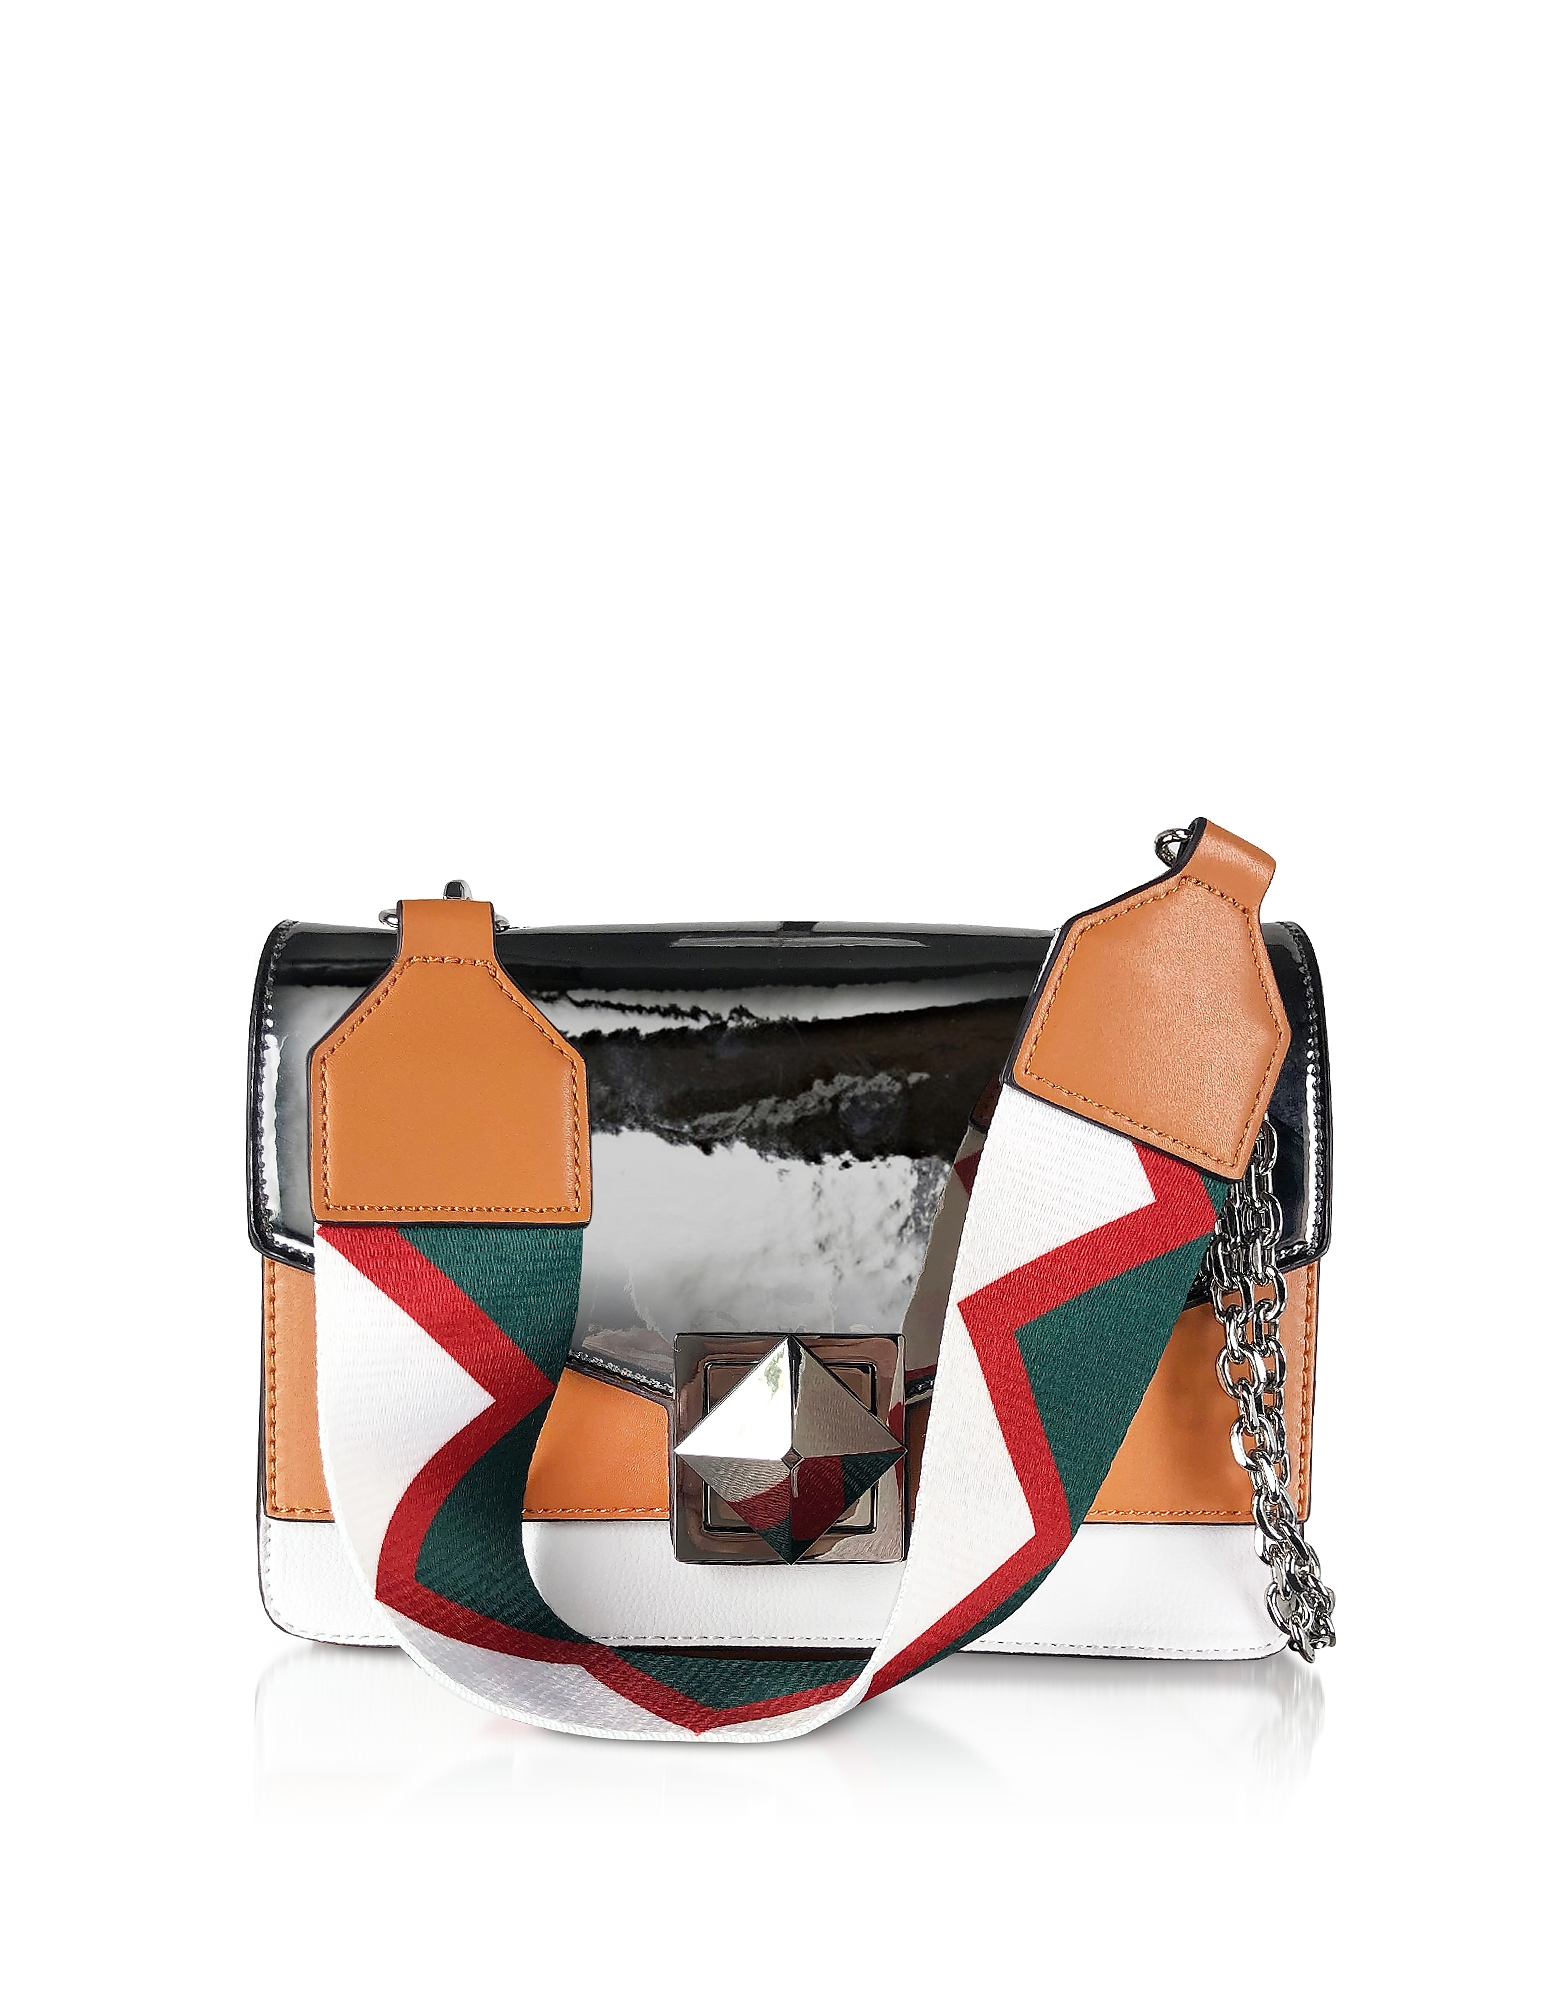 Manila Grace Designer Handbags, Color Block Laminated Shoulder Bag